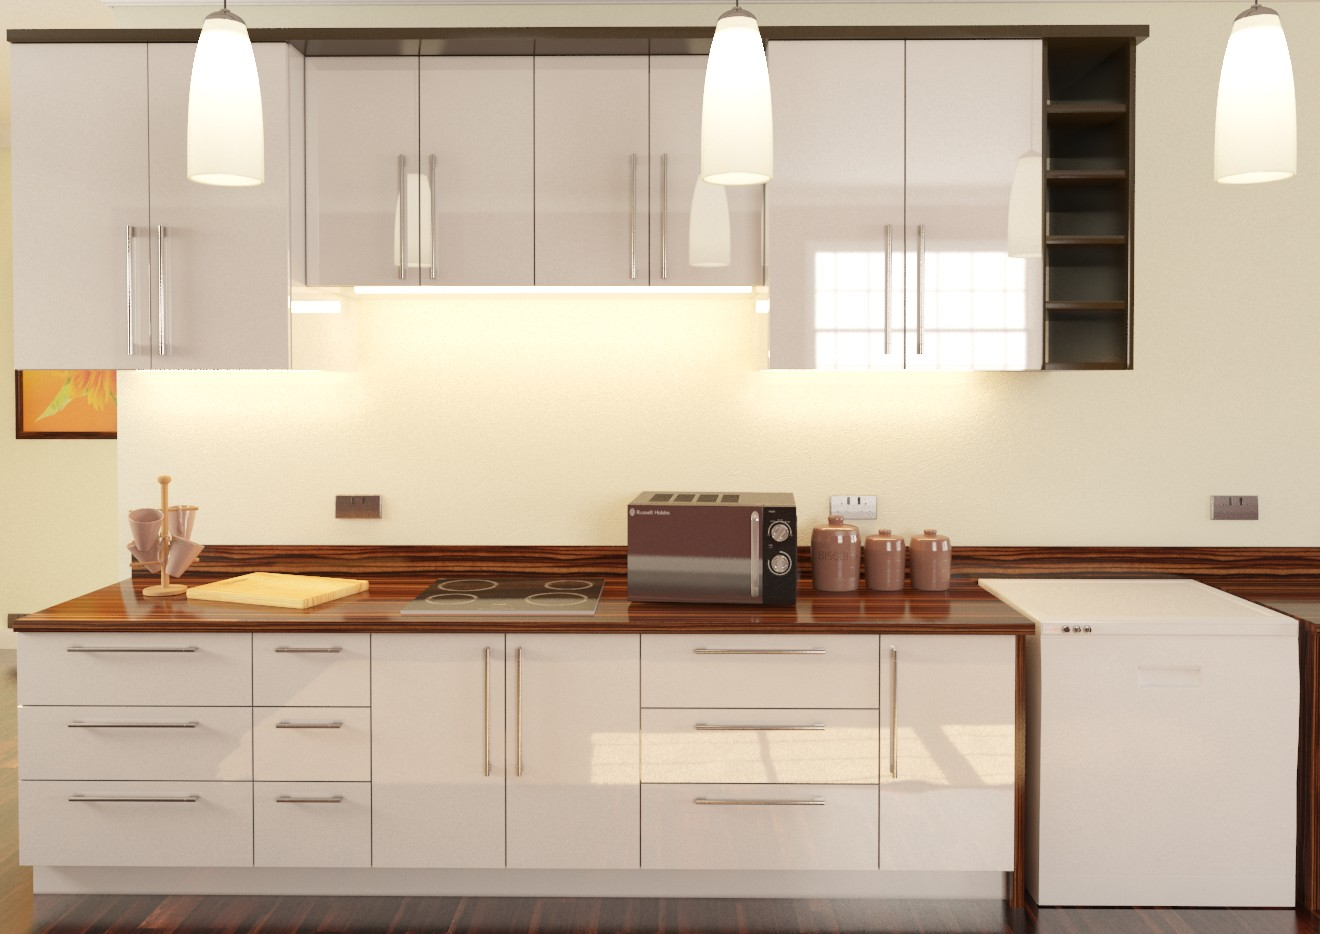 Realistic Interior Rendering Issues Vray/3ds Max 2016